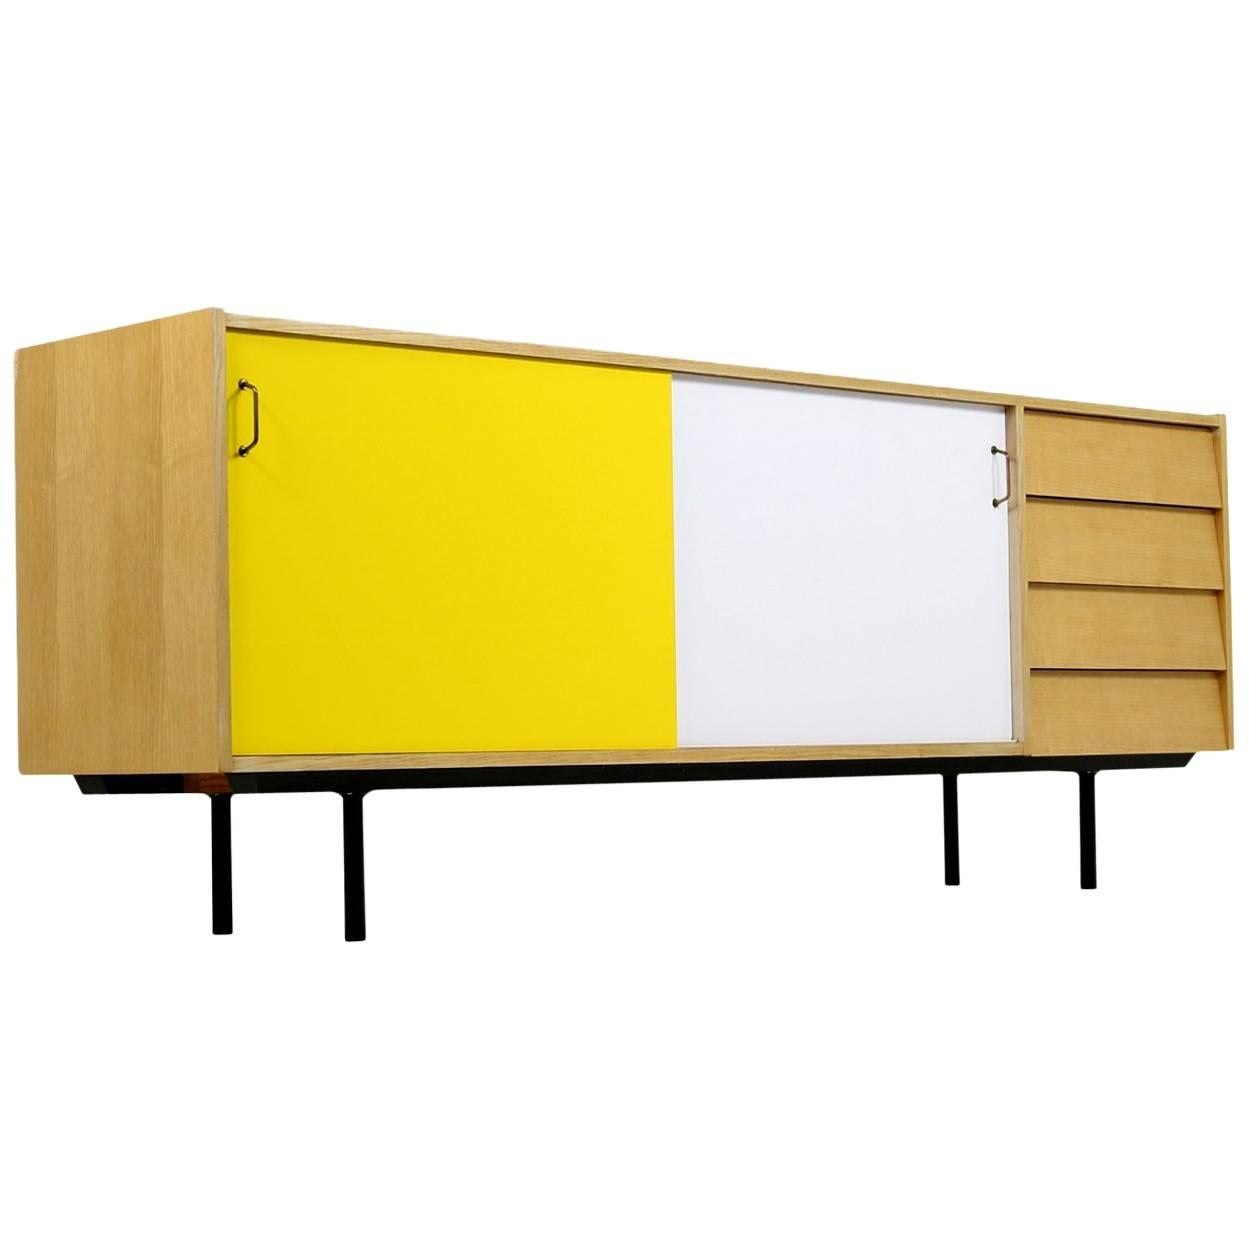 1950s Oak Sideboard Mid-Century Modern Design with Drawers Brass Handles